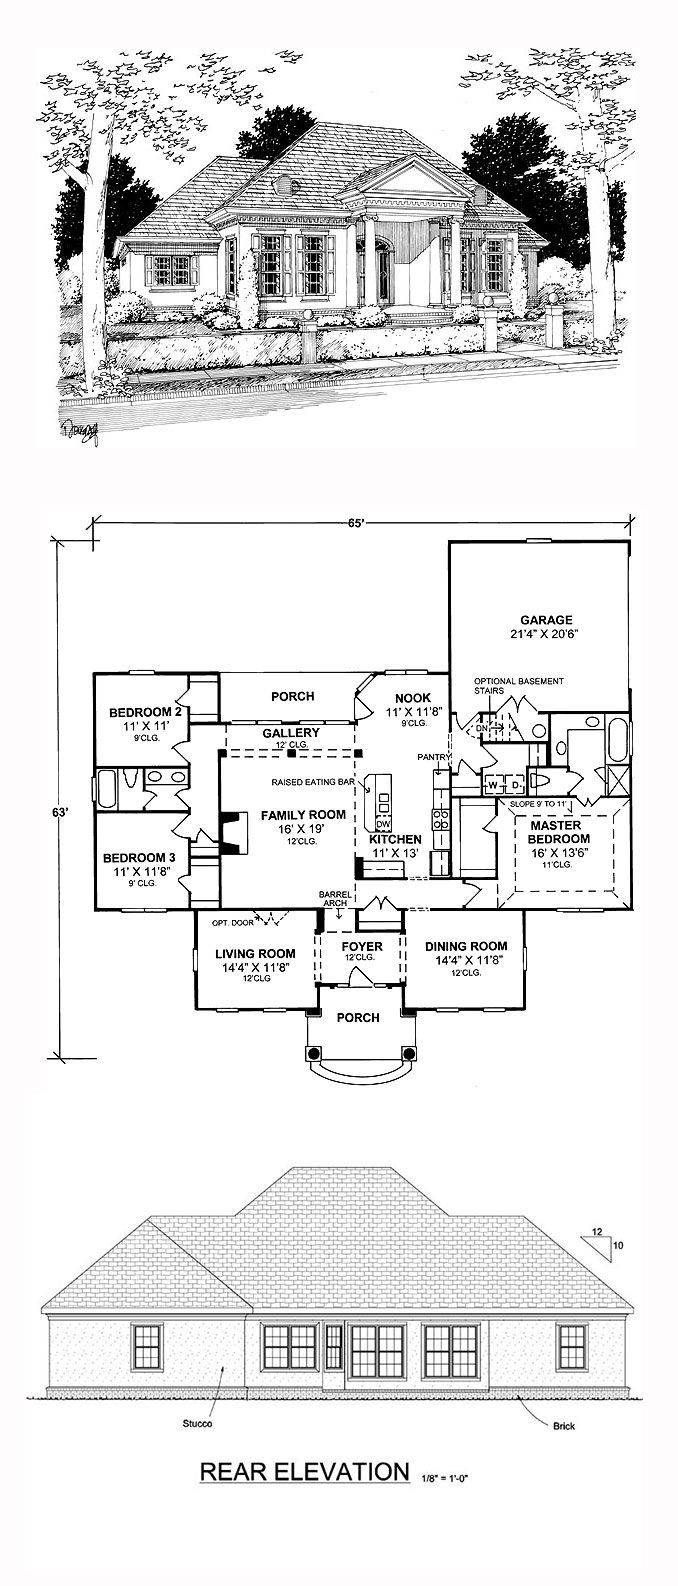 Greek Revival Style House Plan with 3 Bed 2 Bath 2 Car Garage